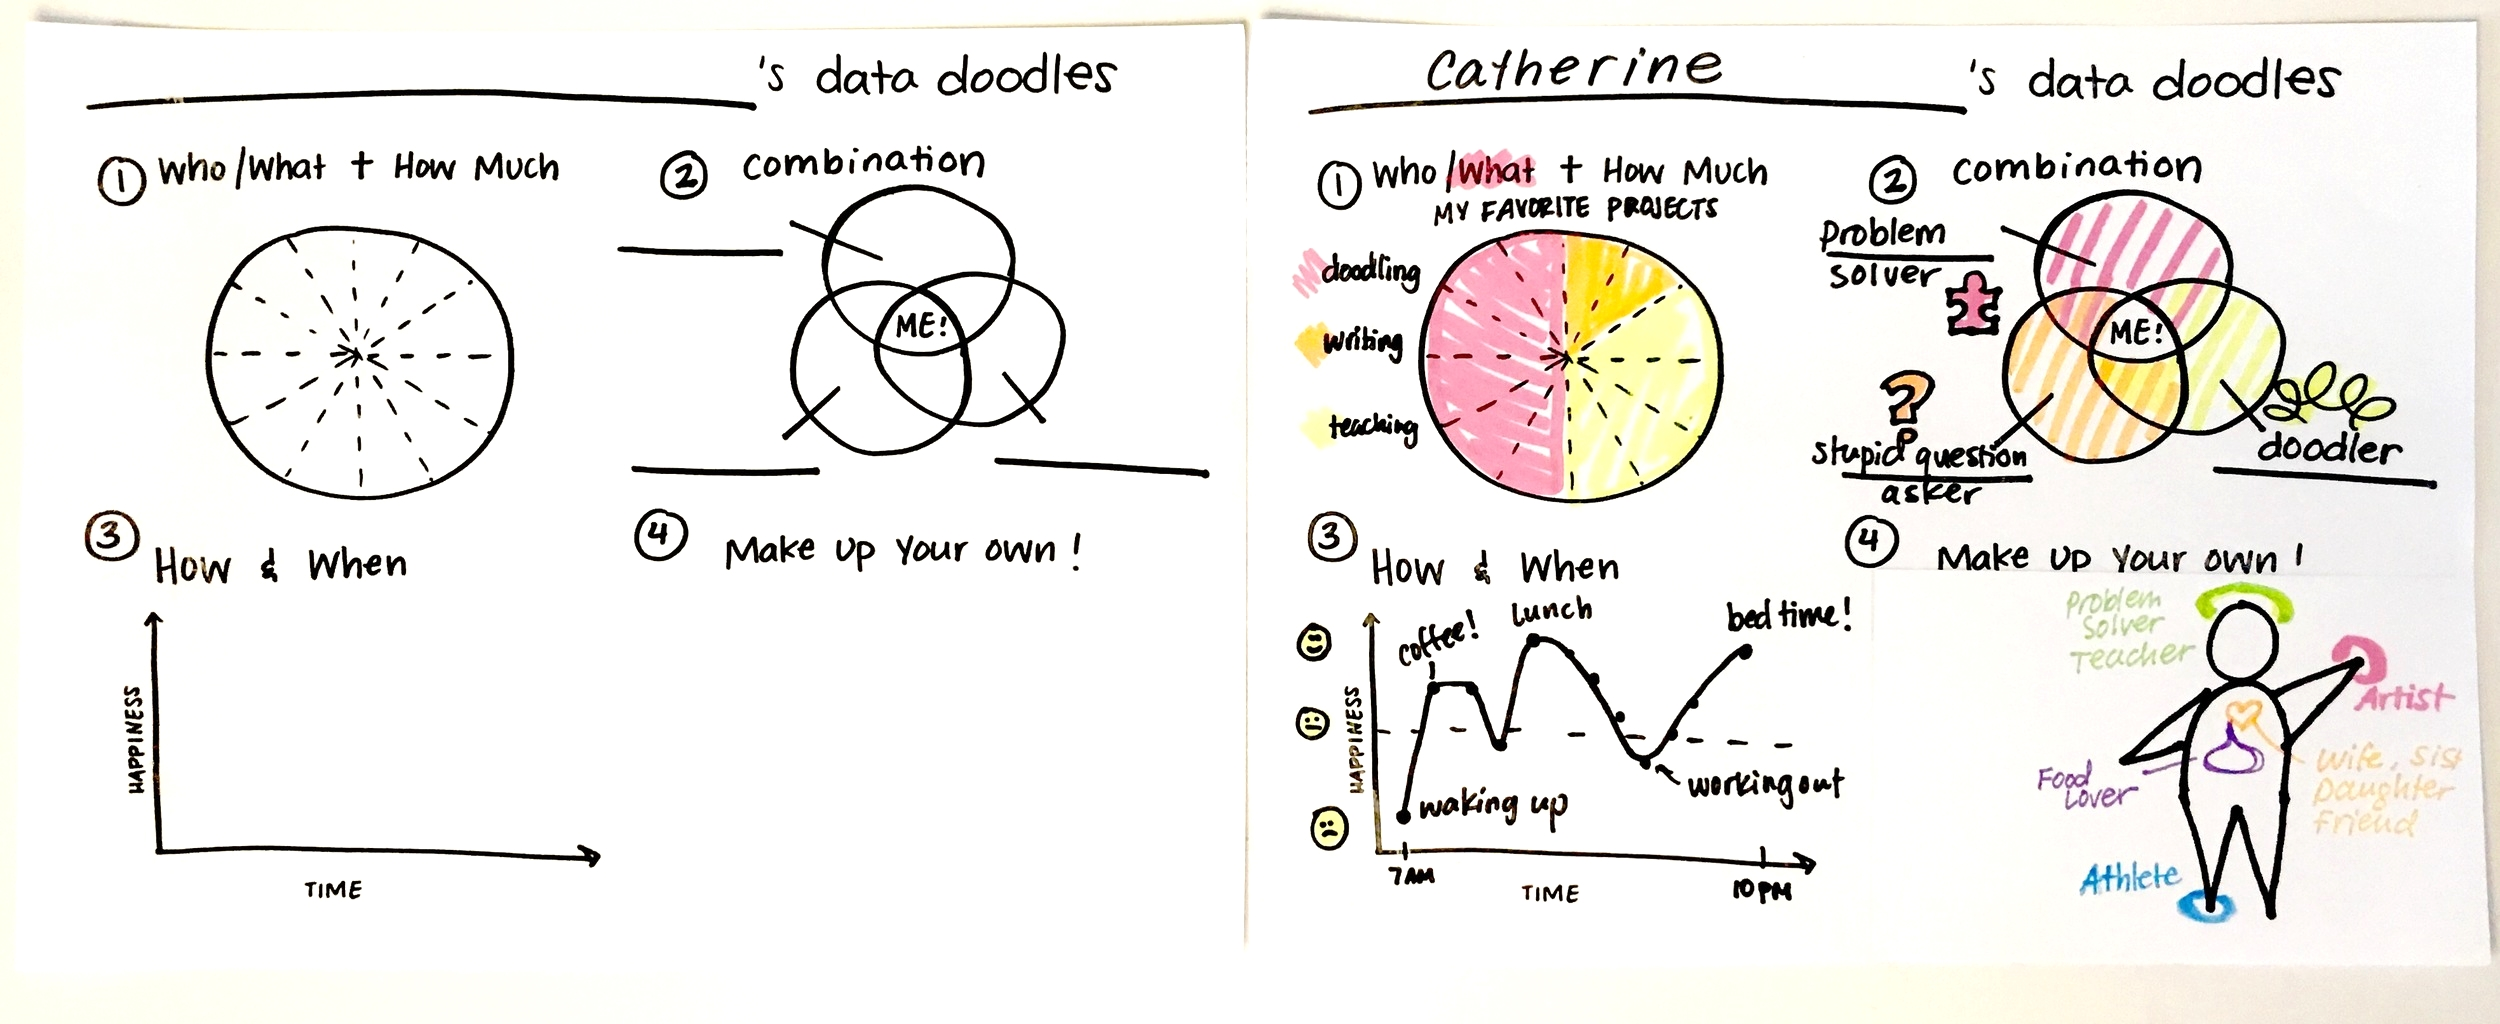 A blank and example data doodle worksheet for scholars to fill out